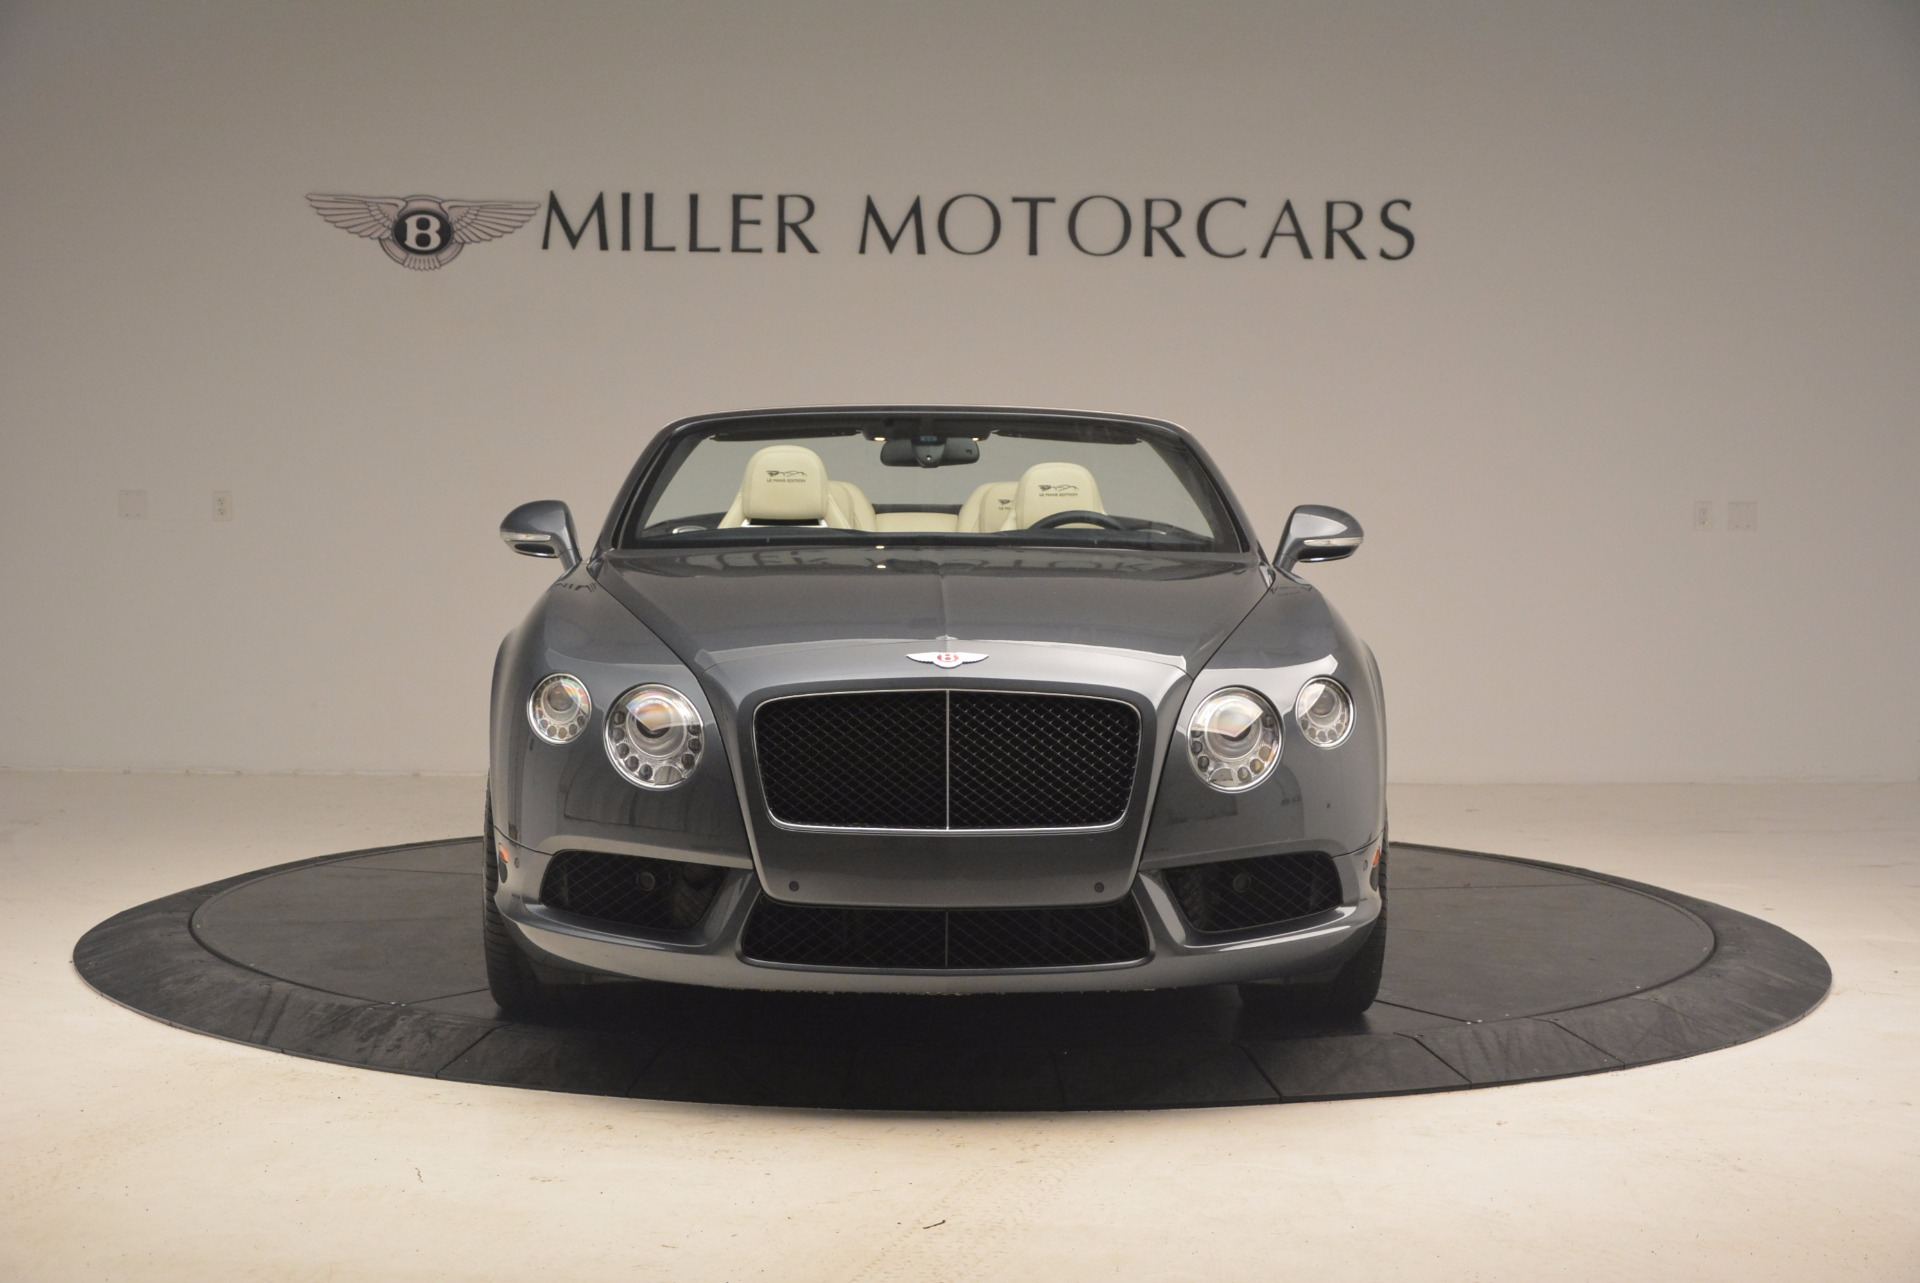 Used 2013 Bentley Continental GT V8 Le Mans Edition, 1 of 48 For Sale In Greenwich, CT 1288_p12